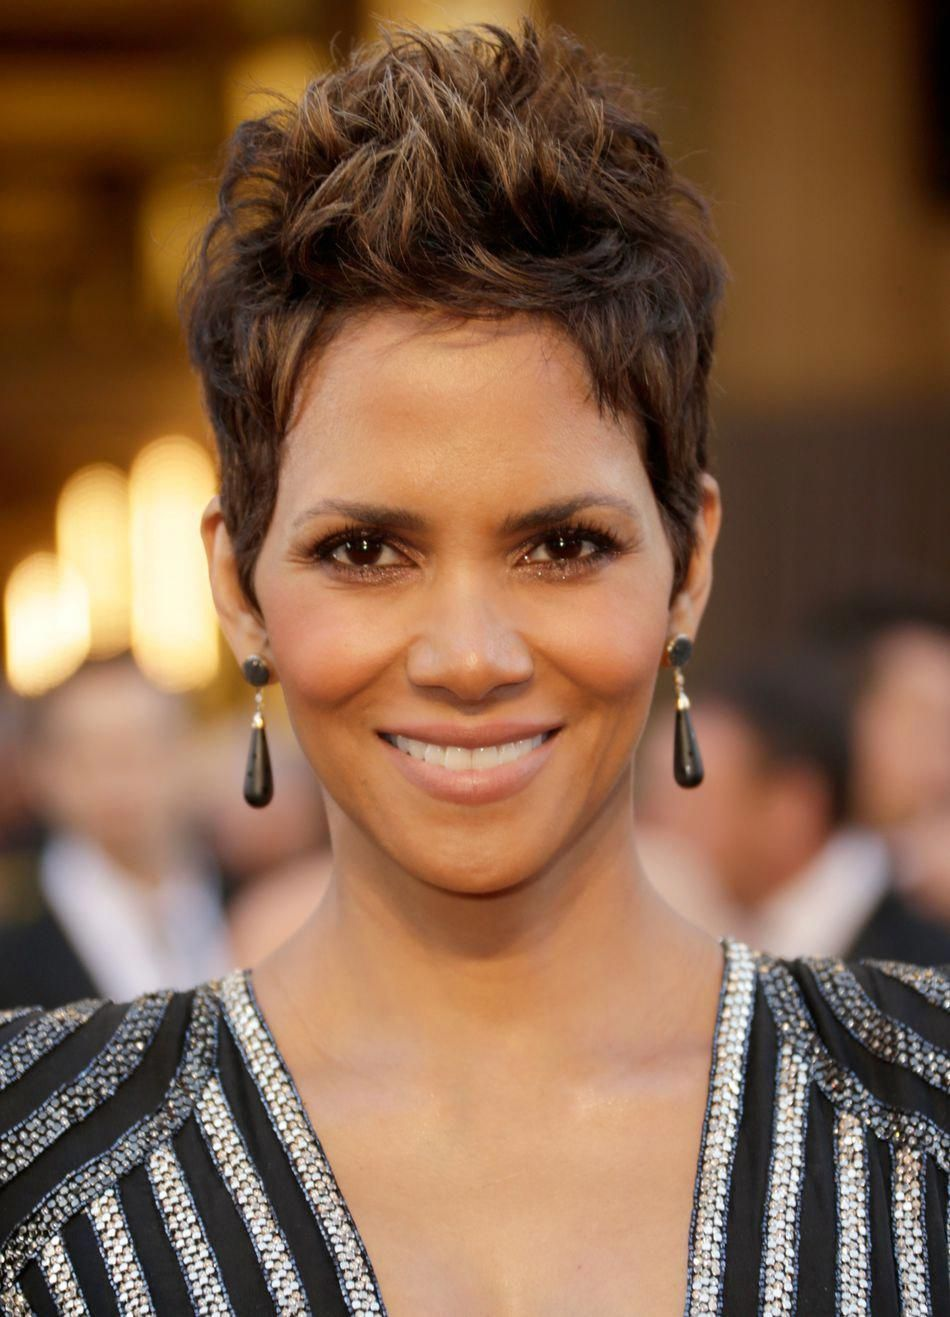 20 Short Hairstyles for Women Over 50 to That Are Cool Forever